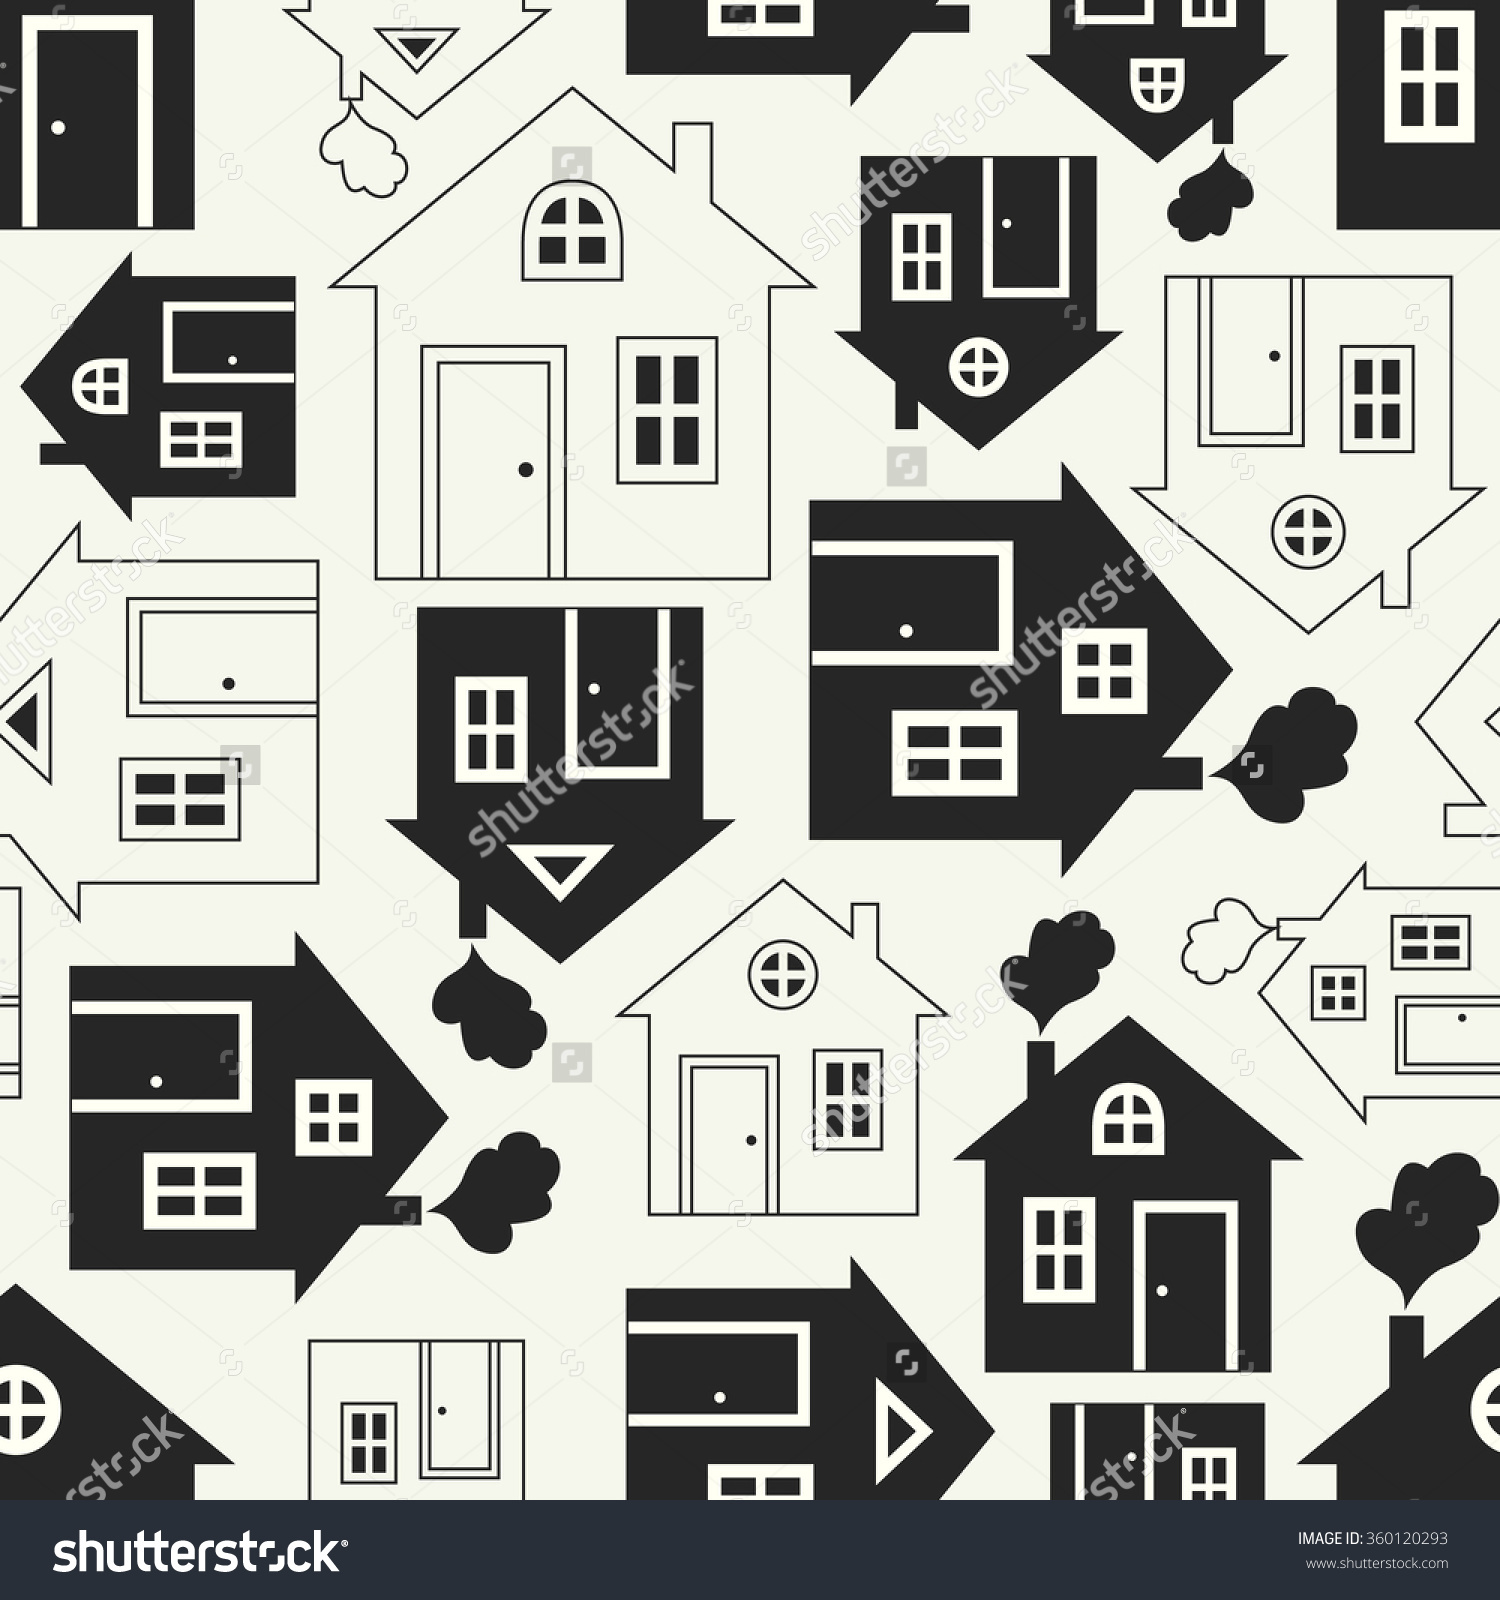 Home Sweet Home House Silhouette And Outline Seamless Pattern.